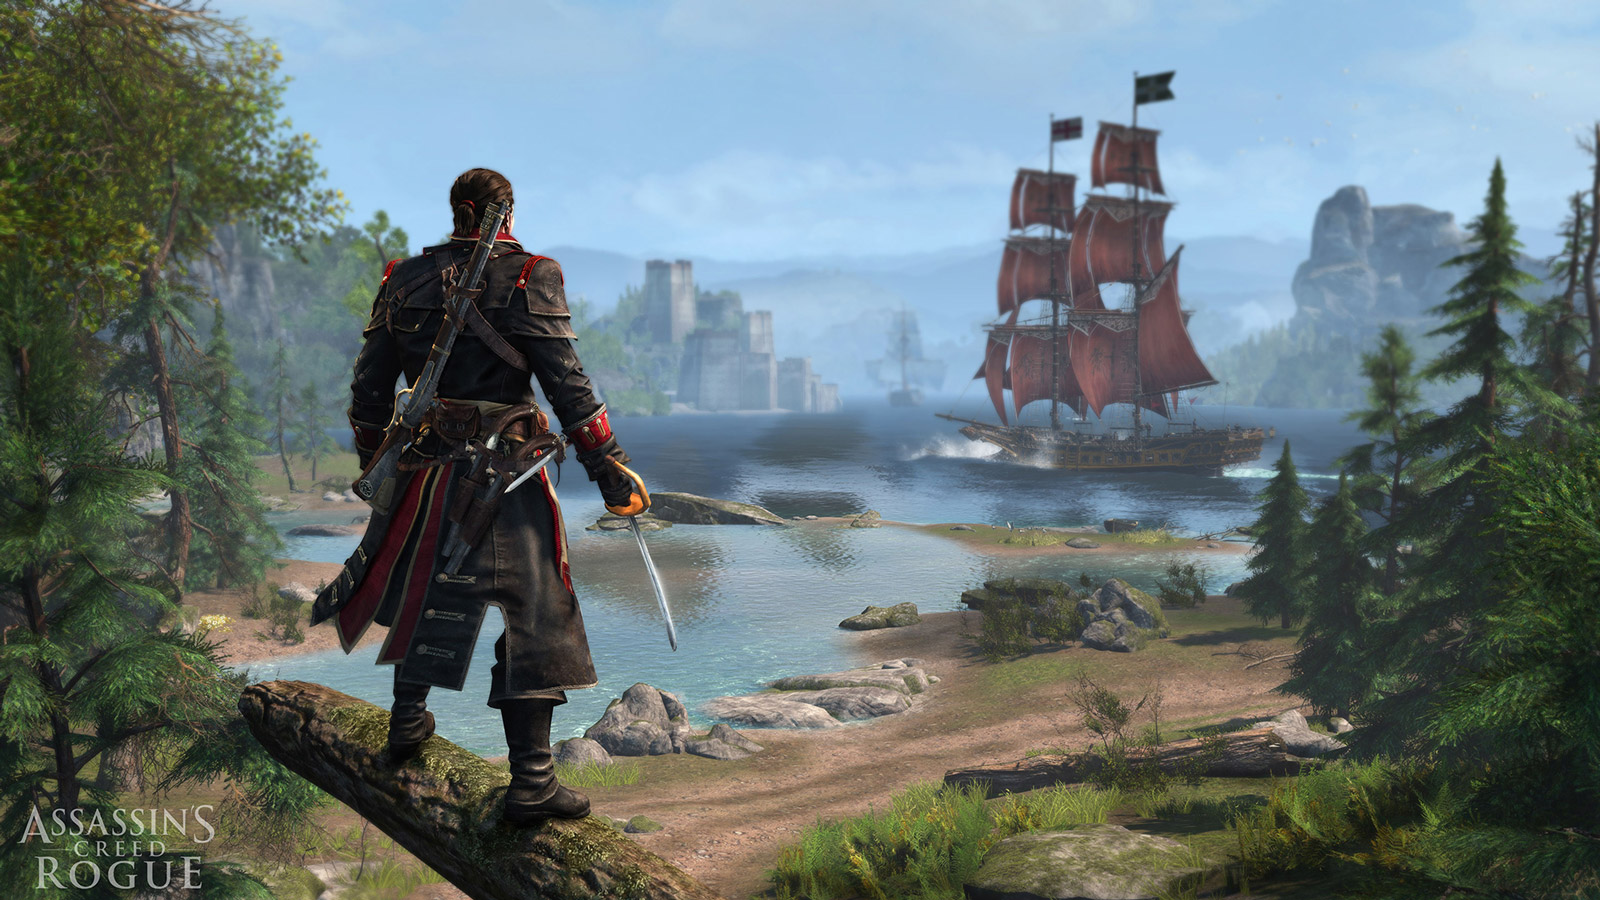 Assassin's Creed: Rogue Wallpaper in 1600x900